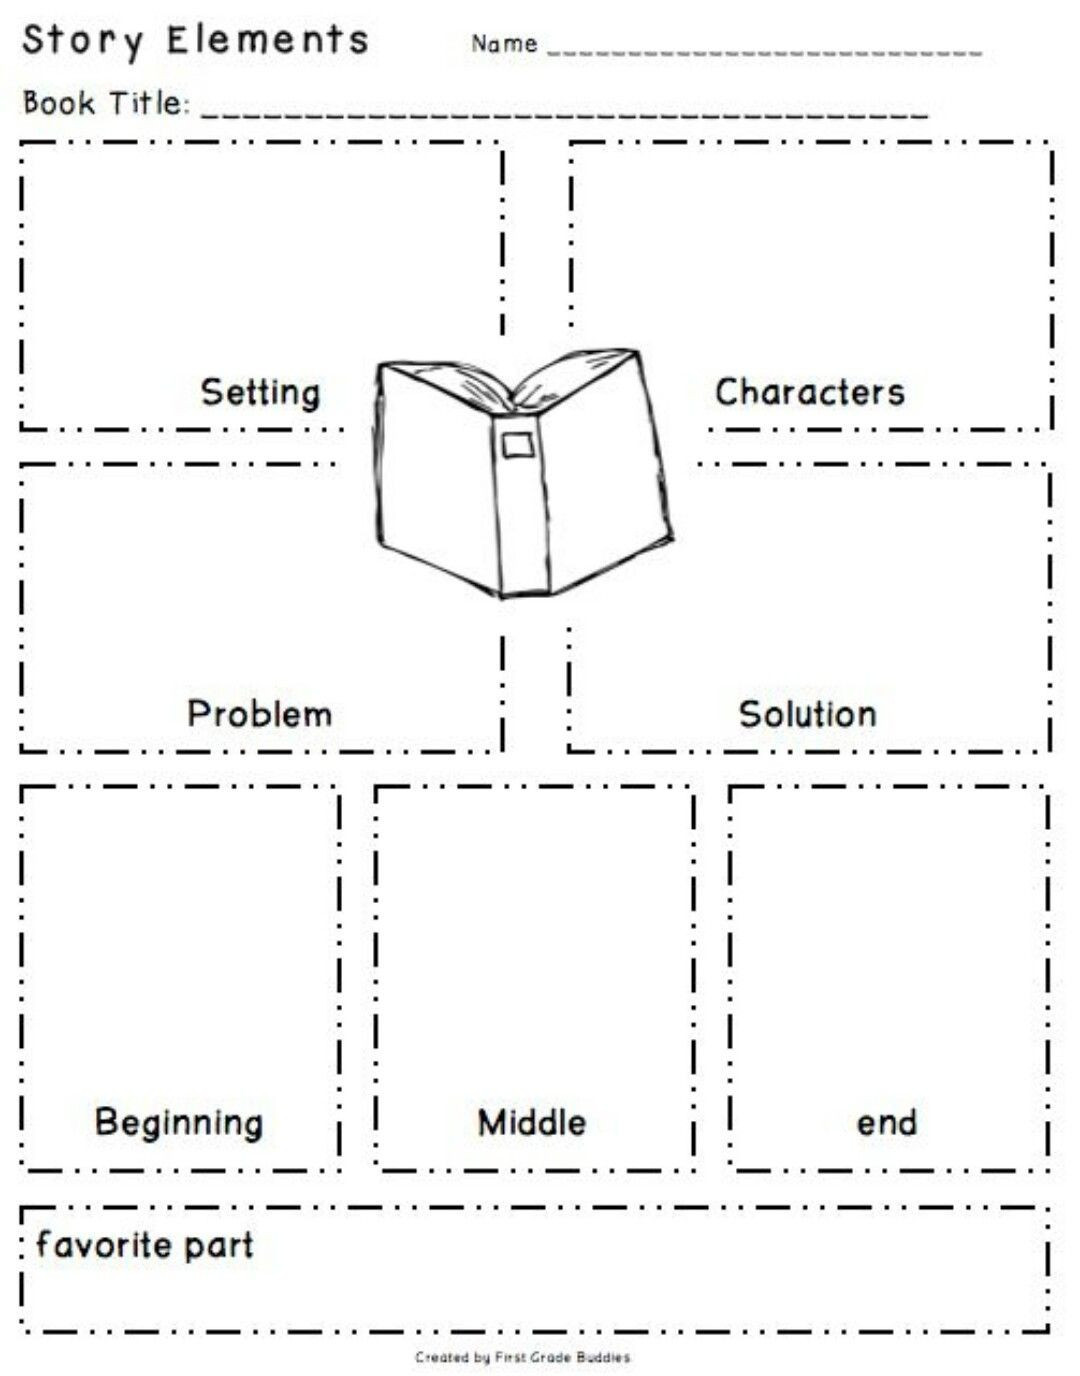 Story Elements Worksheets 4th Grade 20 Story Elements Worksheets 3rd Grade